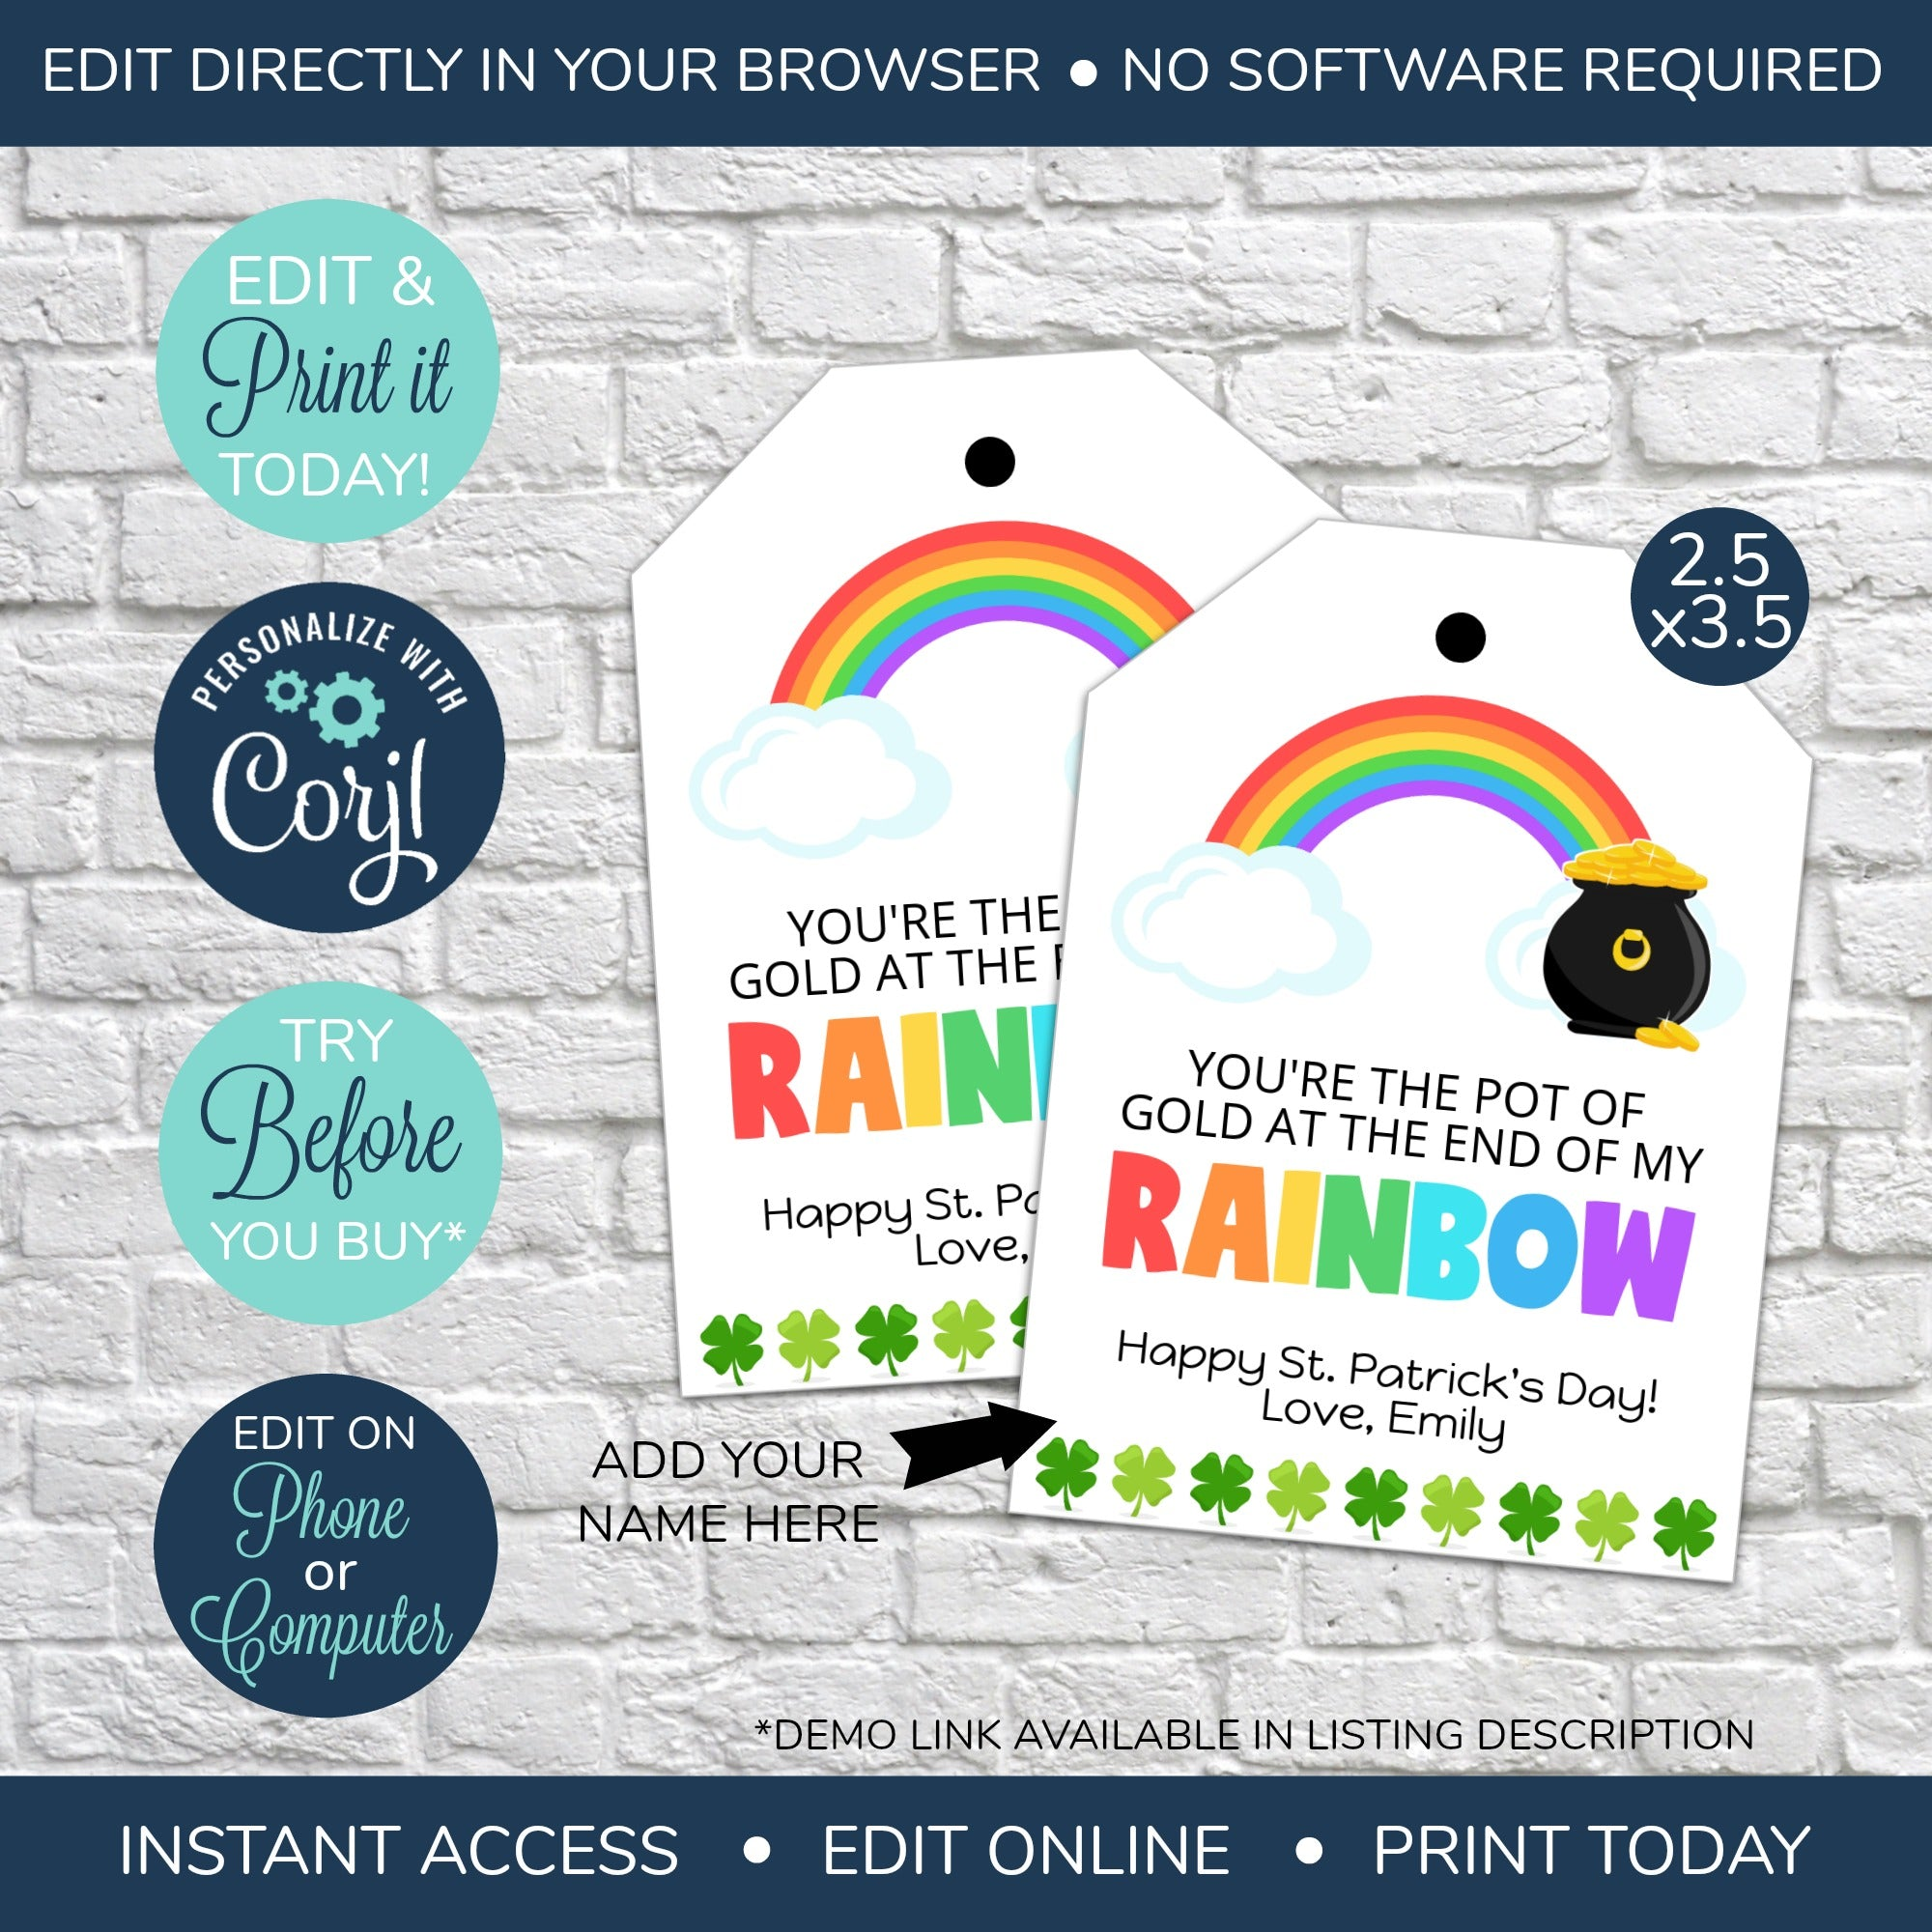 You/'re the pot of gold Patrick/'s Day Gift Card Holder Patrick/'s Day Gift St St Saint Patrick/'s Printable Thank You Gift Card Holders